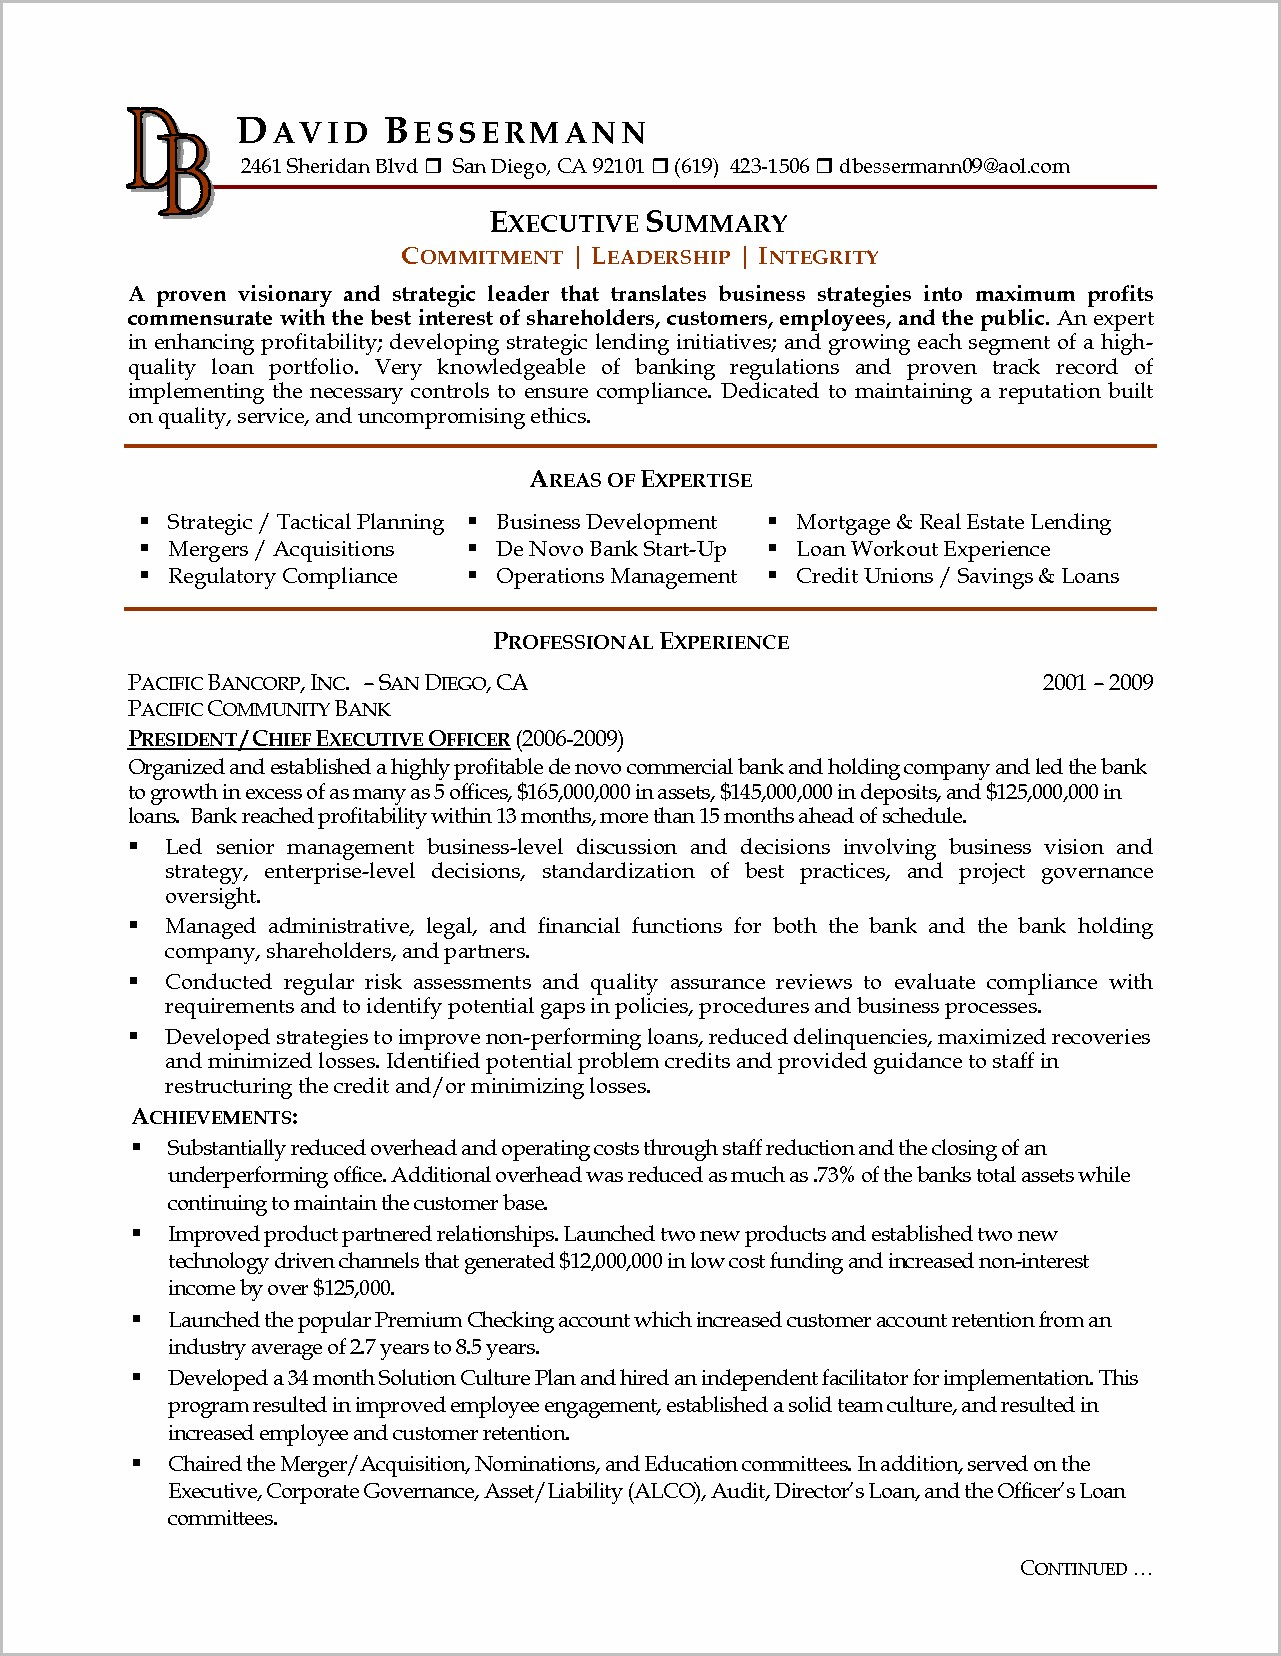 Examples Of Resume Executive Summary